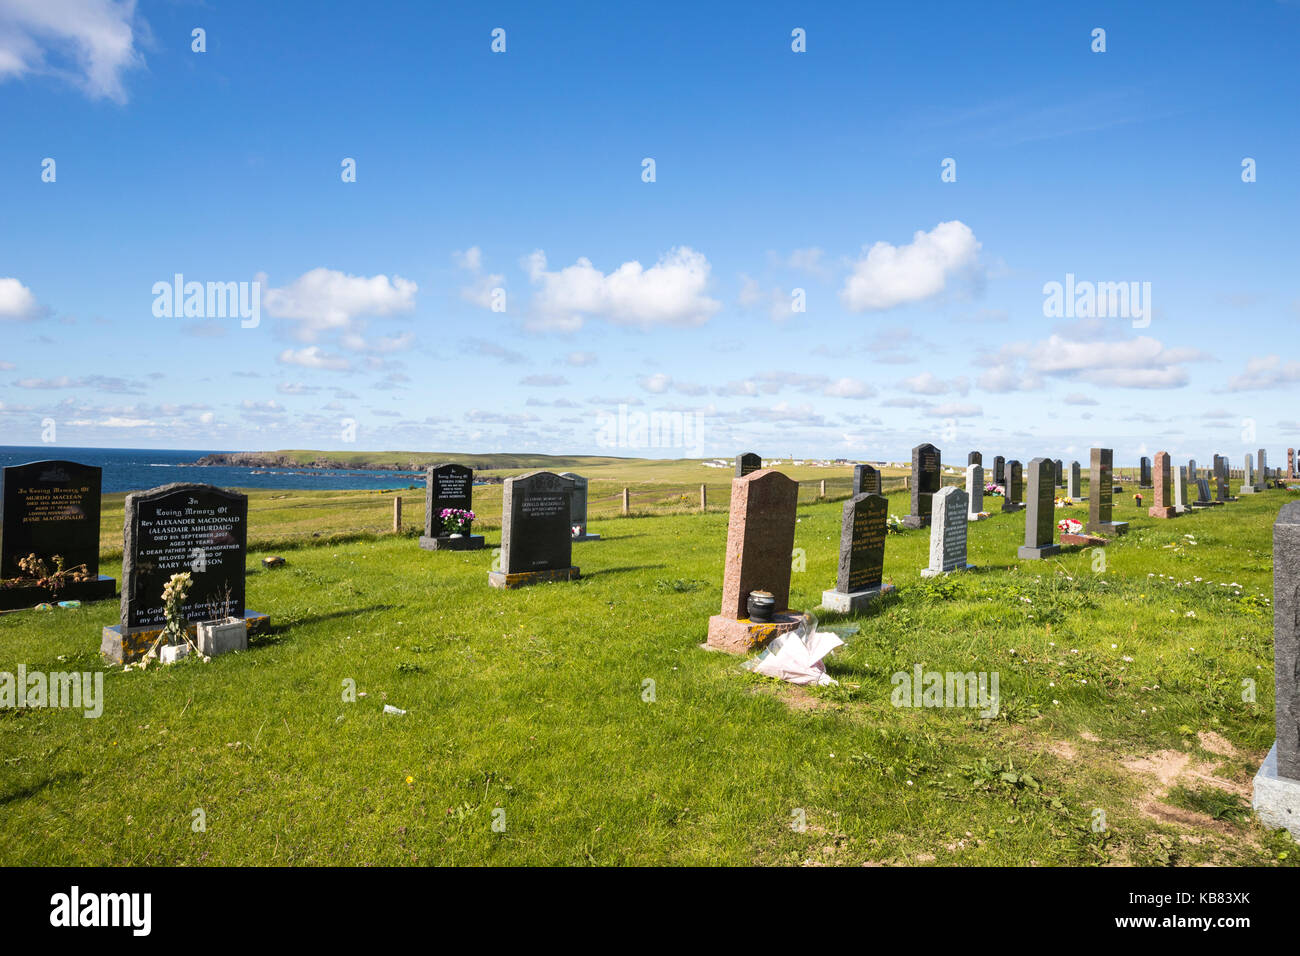 Cemetery near Eoropie Beach, Isle of Lewis in the parish of Ness, in the Outer Hebrides, Scotland - Stock Image